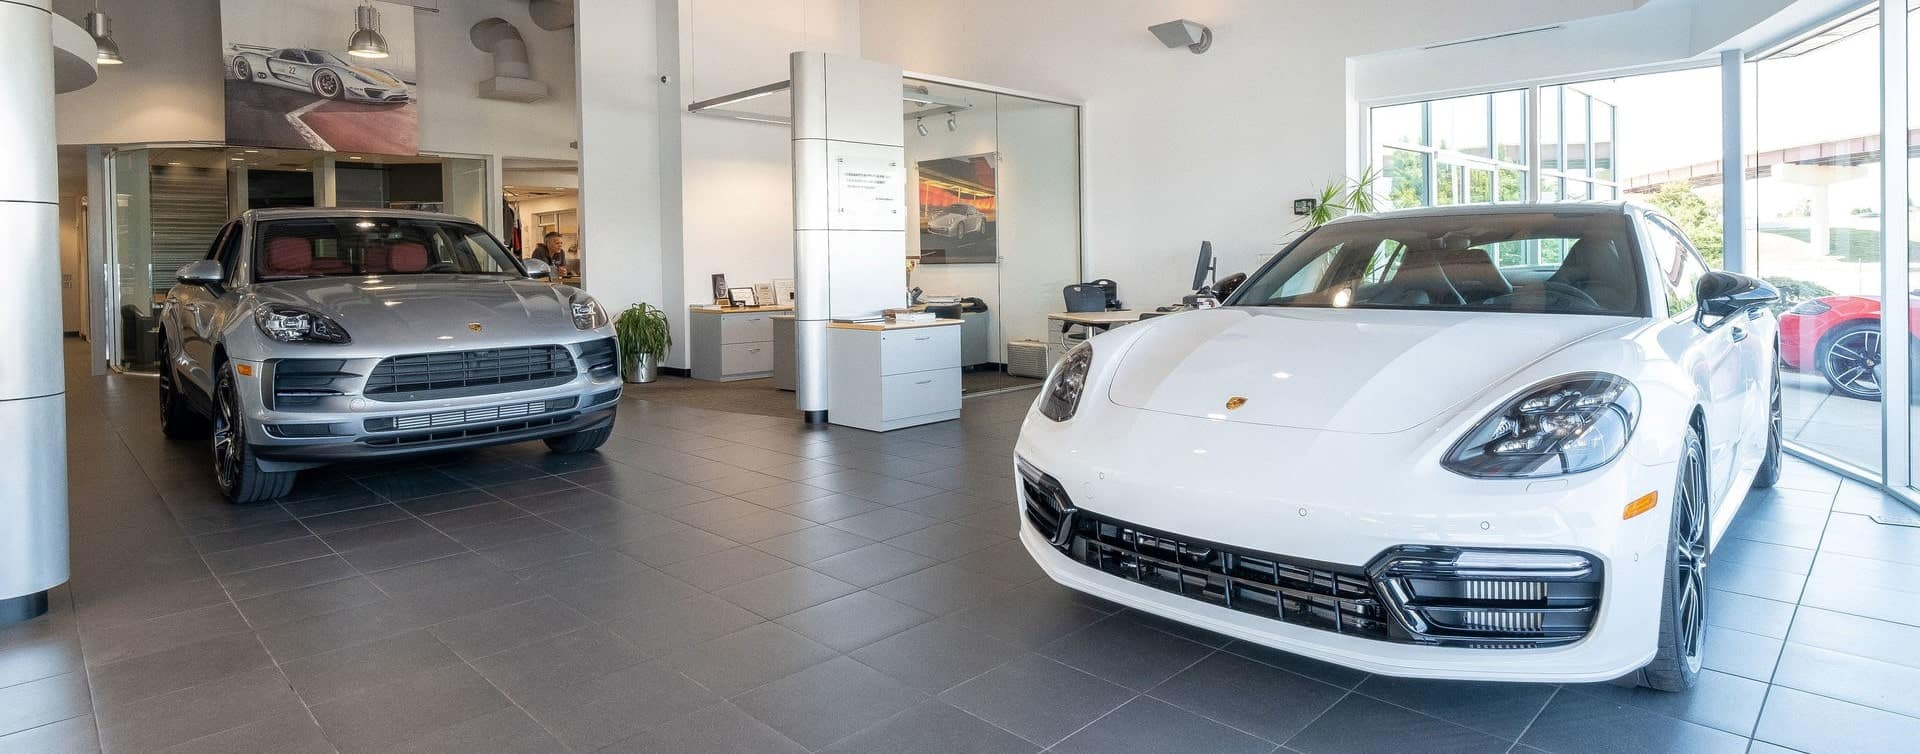 used and certified pre-owned Porsches inside the Tulsa dealership